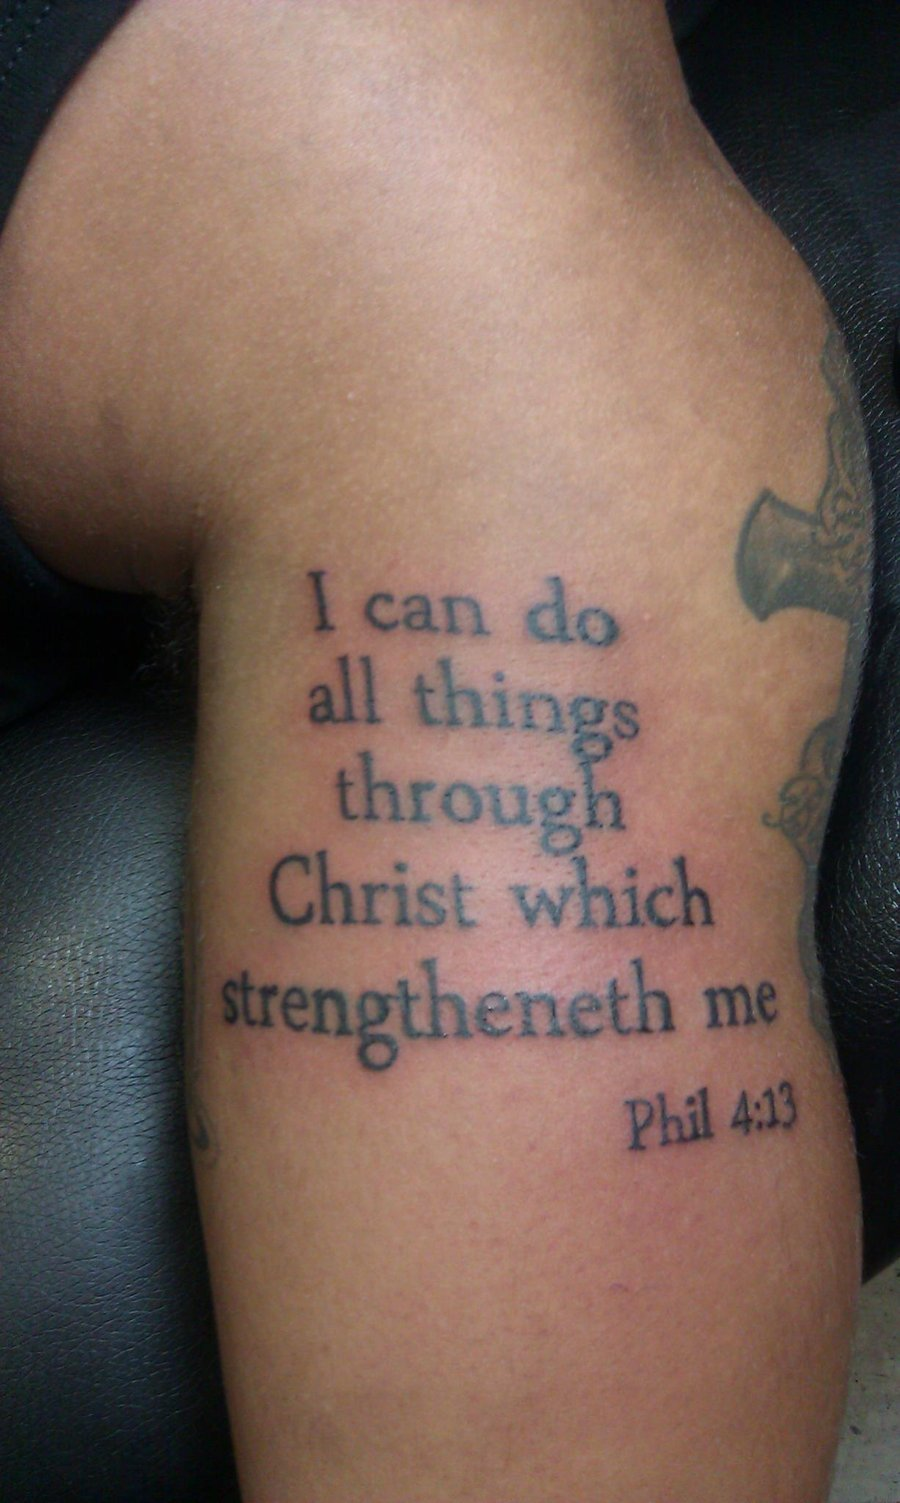 Bible Verse Tattoos Designs, Ideas and Meaning | Tattoos For You